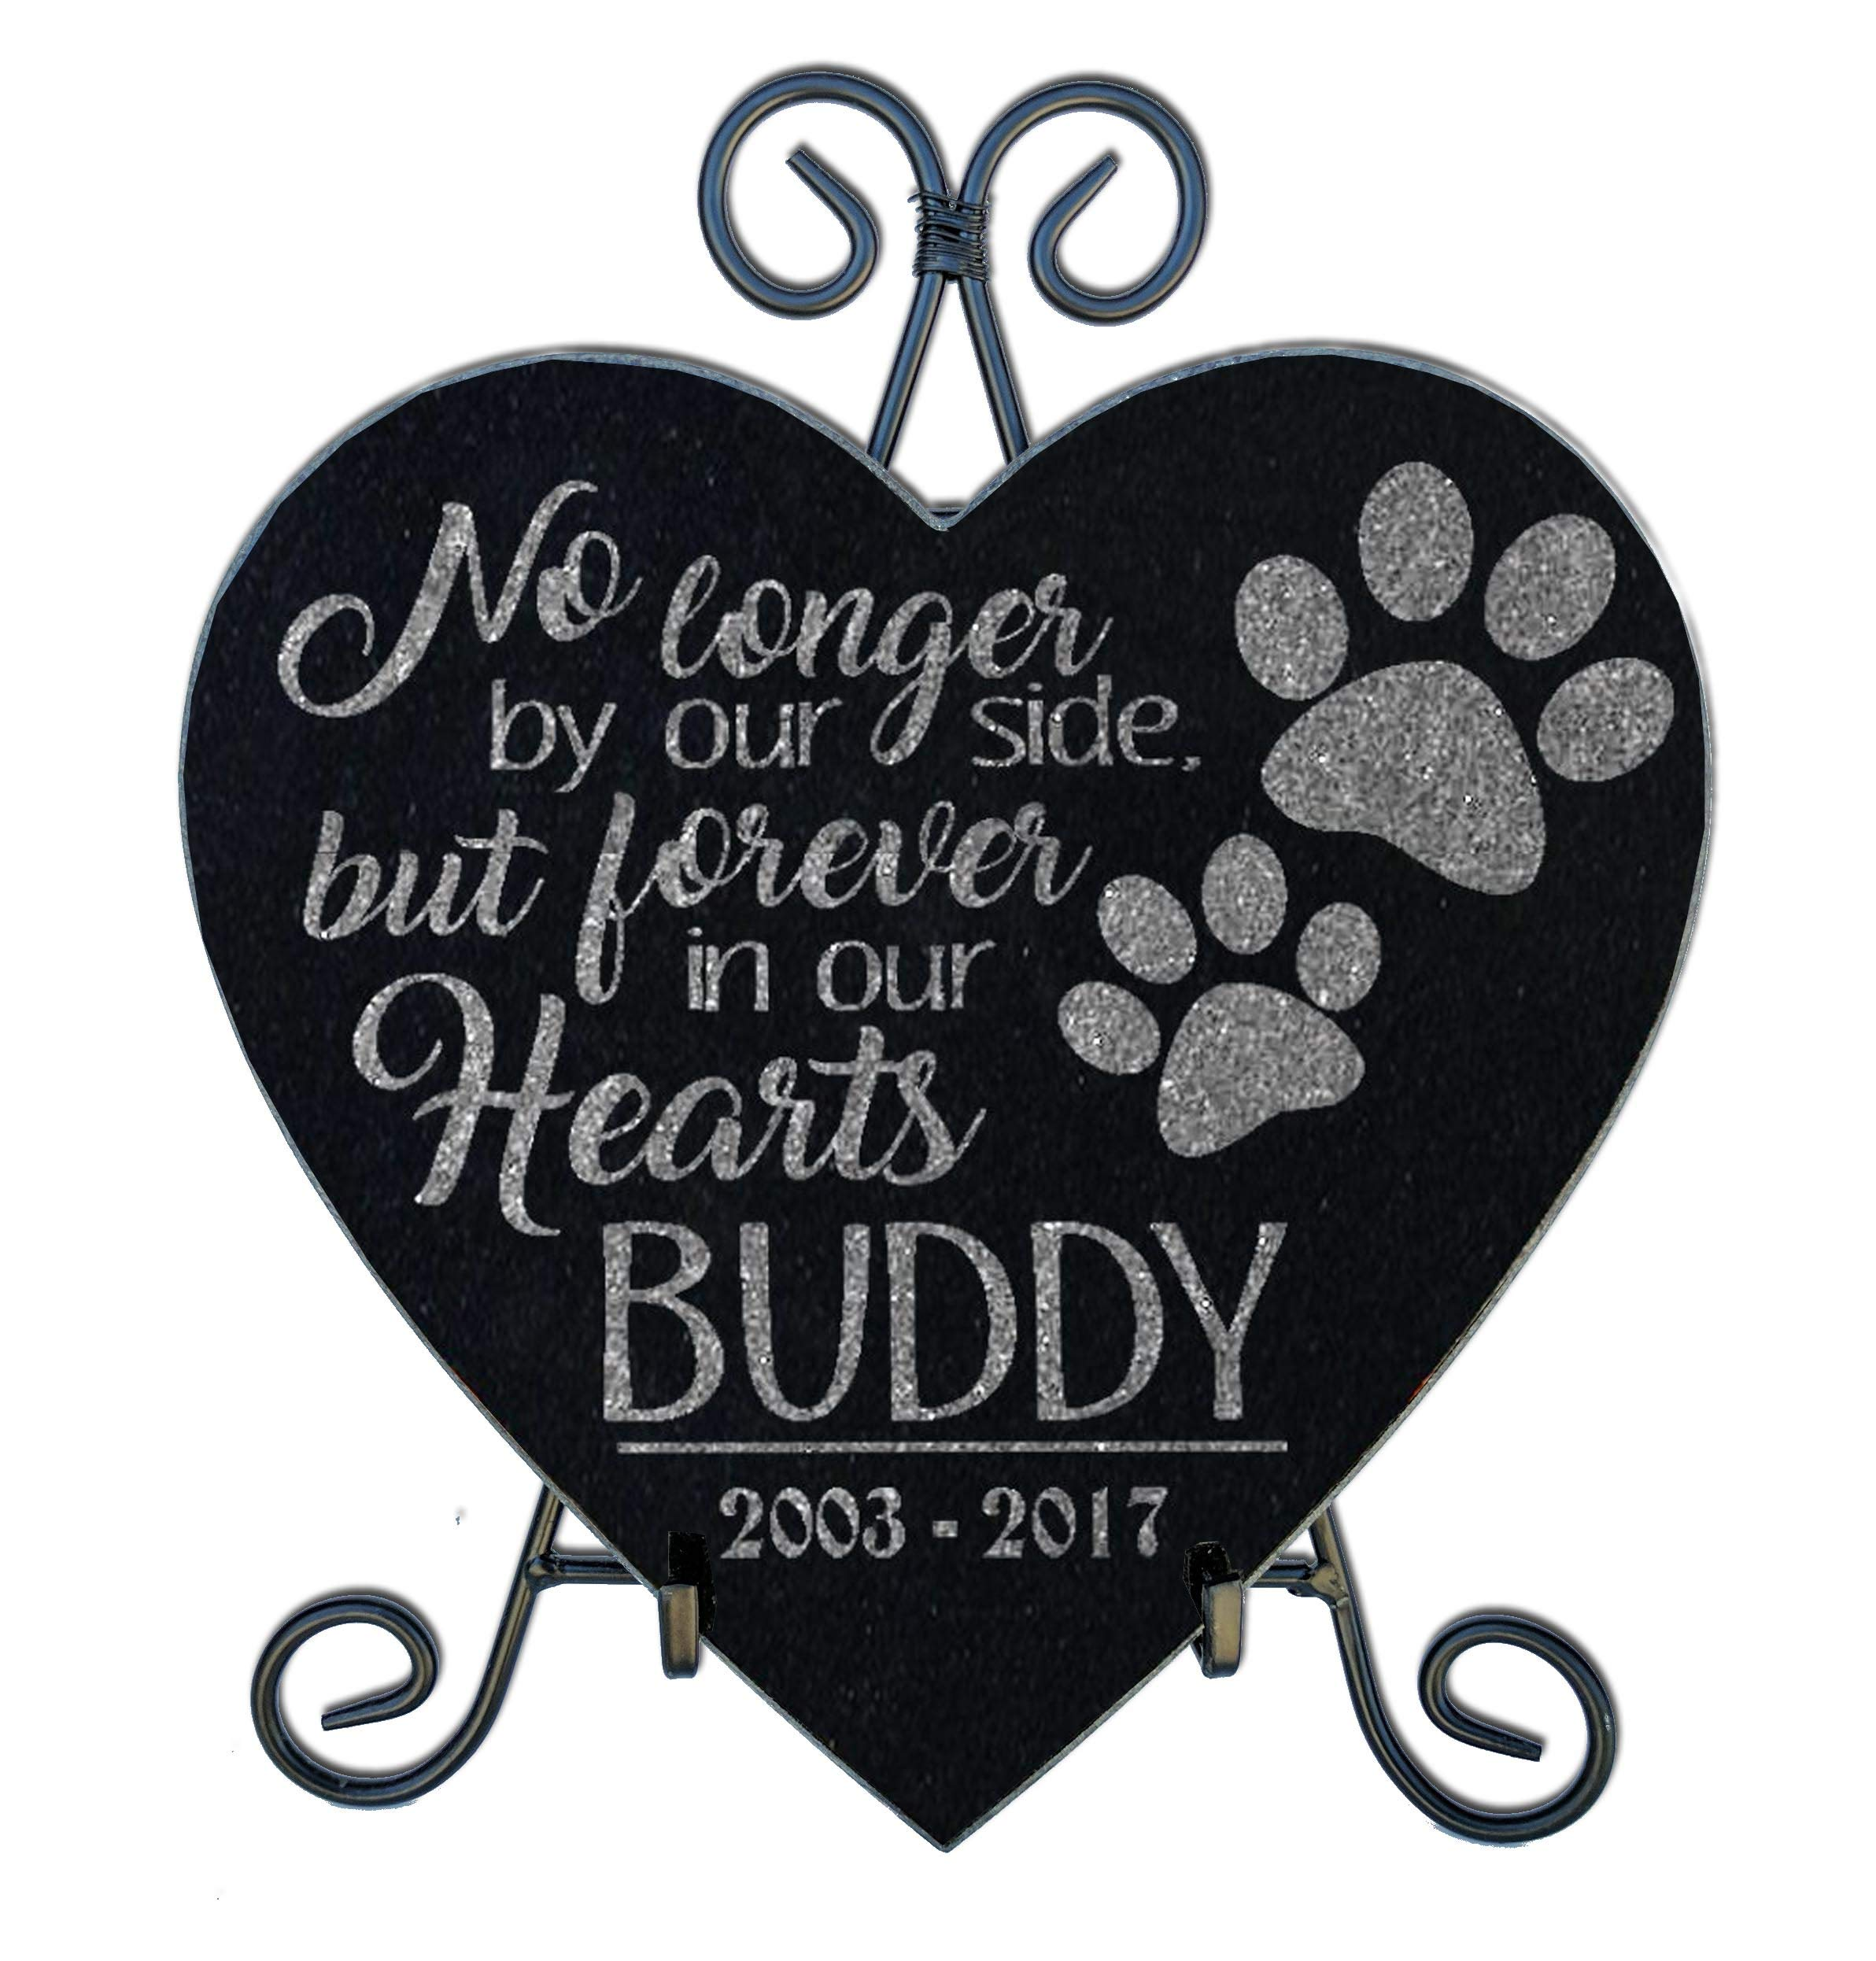 Personalized Pet 10x10 Paw Prints Memorial Stone Heart Shaped with Stand Pet Loss Sorrow Remembrance Garden Plaque Gift Indoor Outdoor Dog Cat Grave Marker by Personalized-Pets-by-StockingFactory